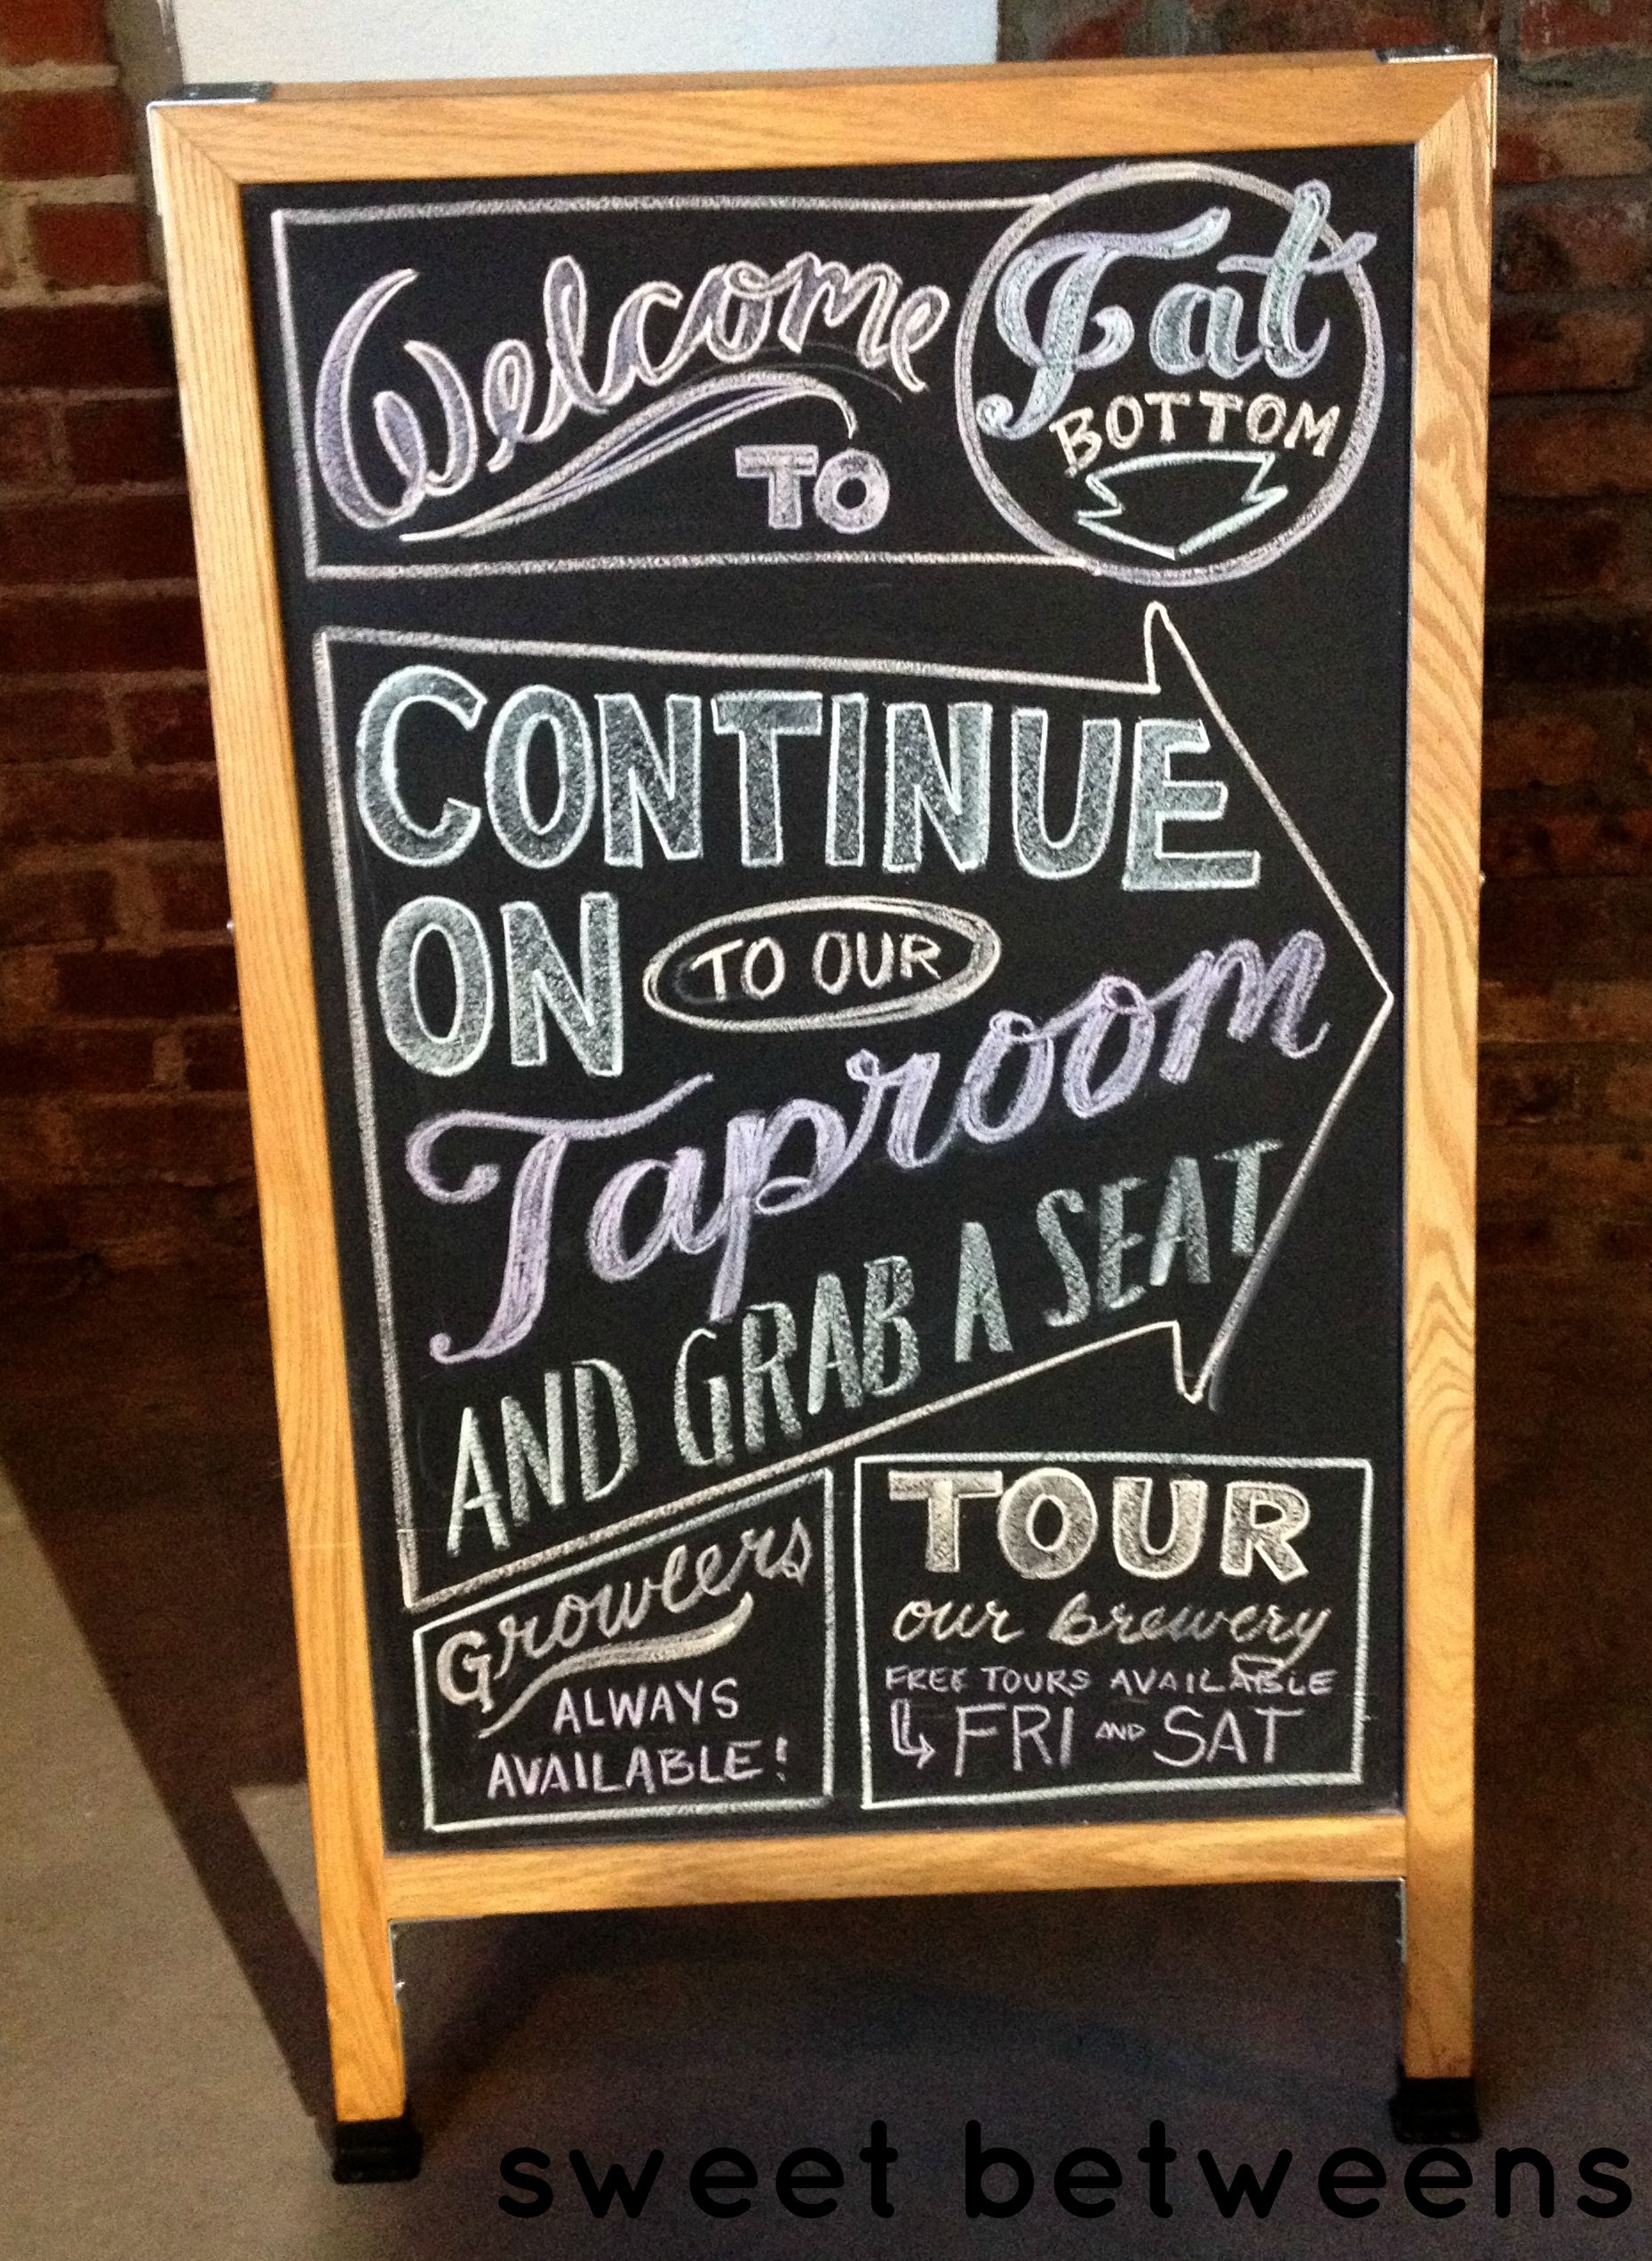 17 Best images about Chalkboard Ideas on Pinterest | Calligraphy ...